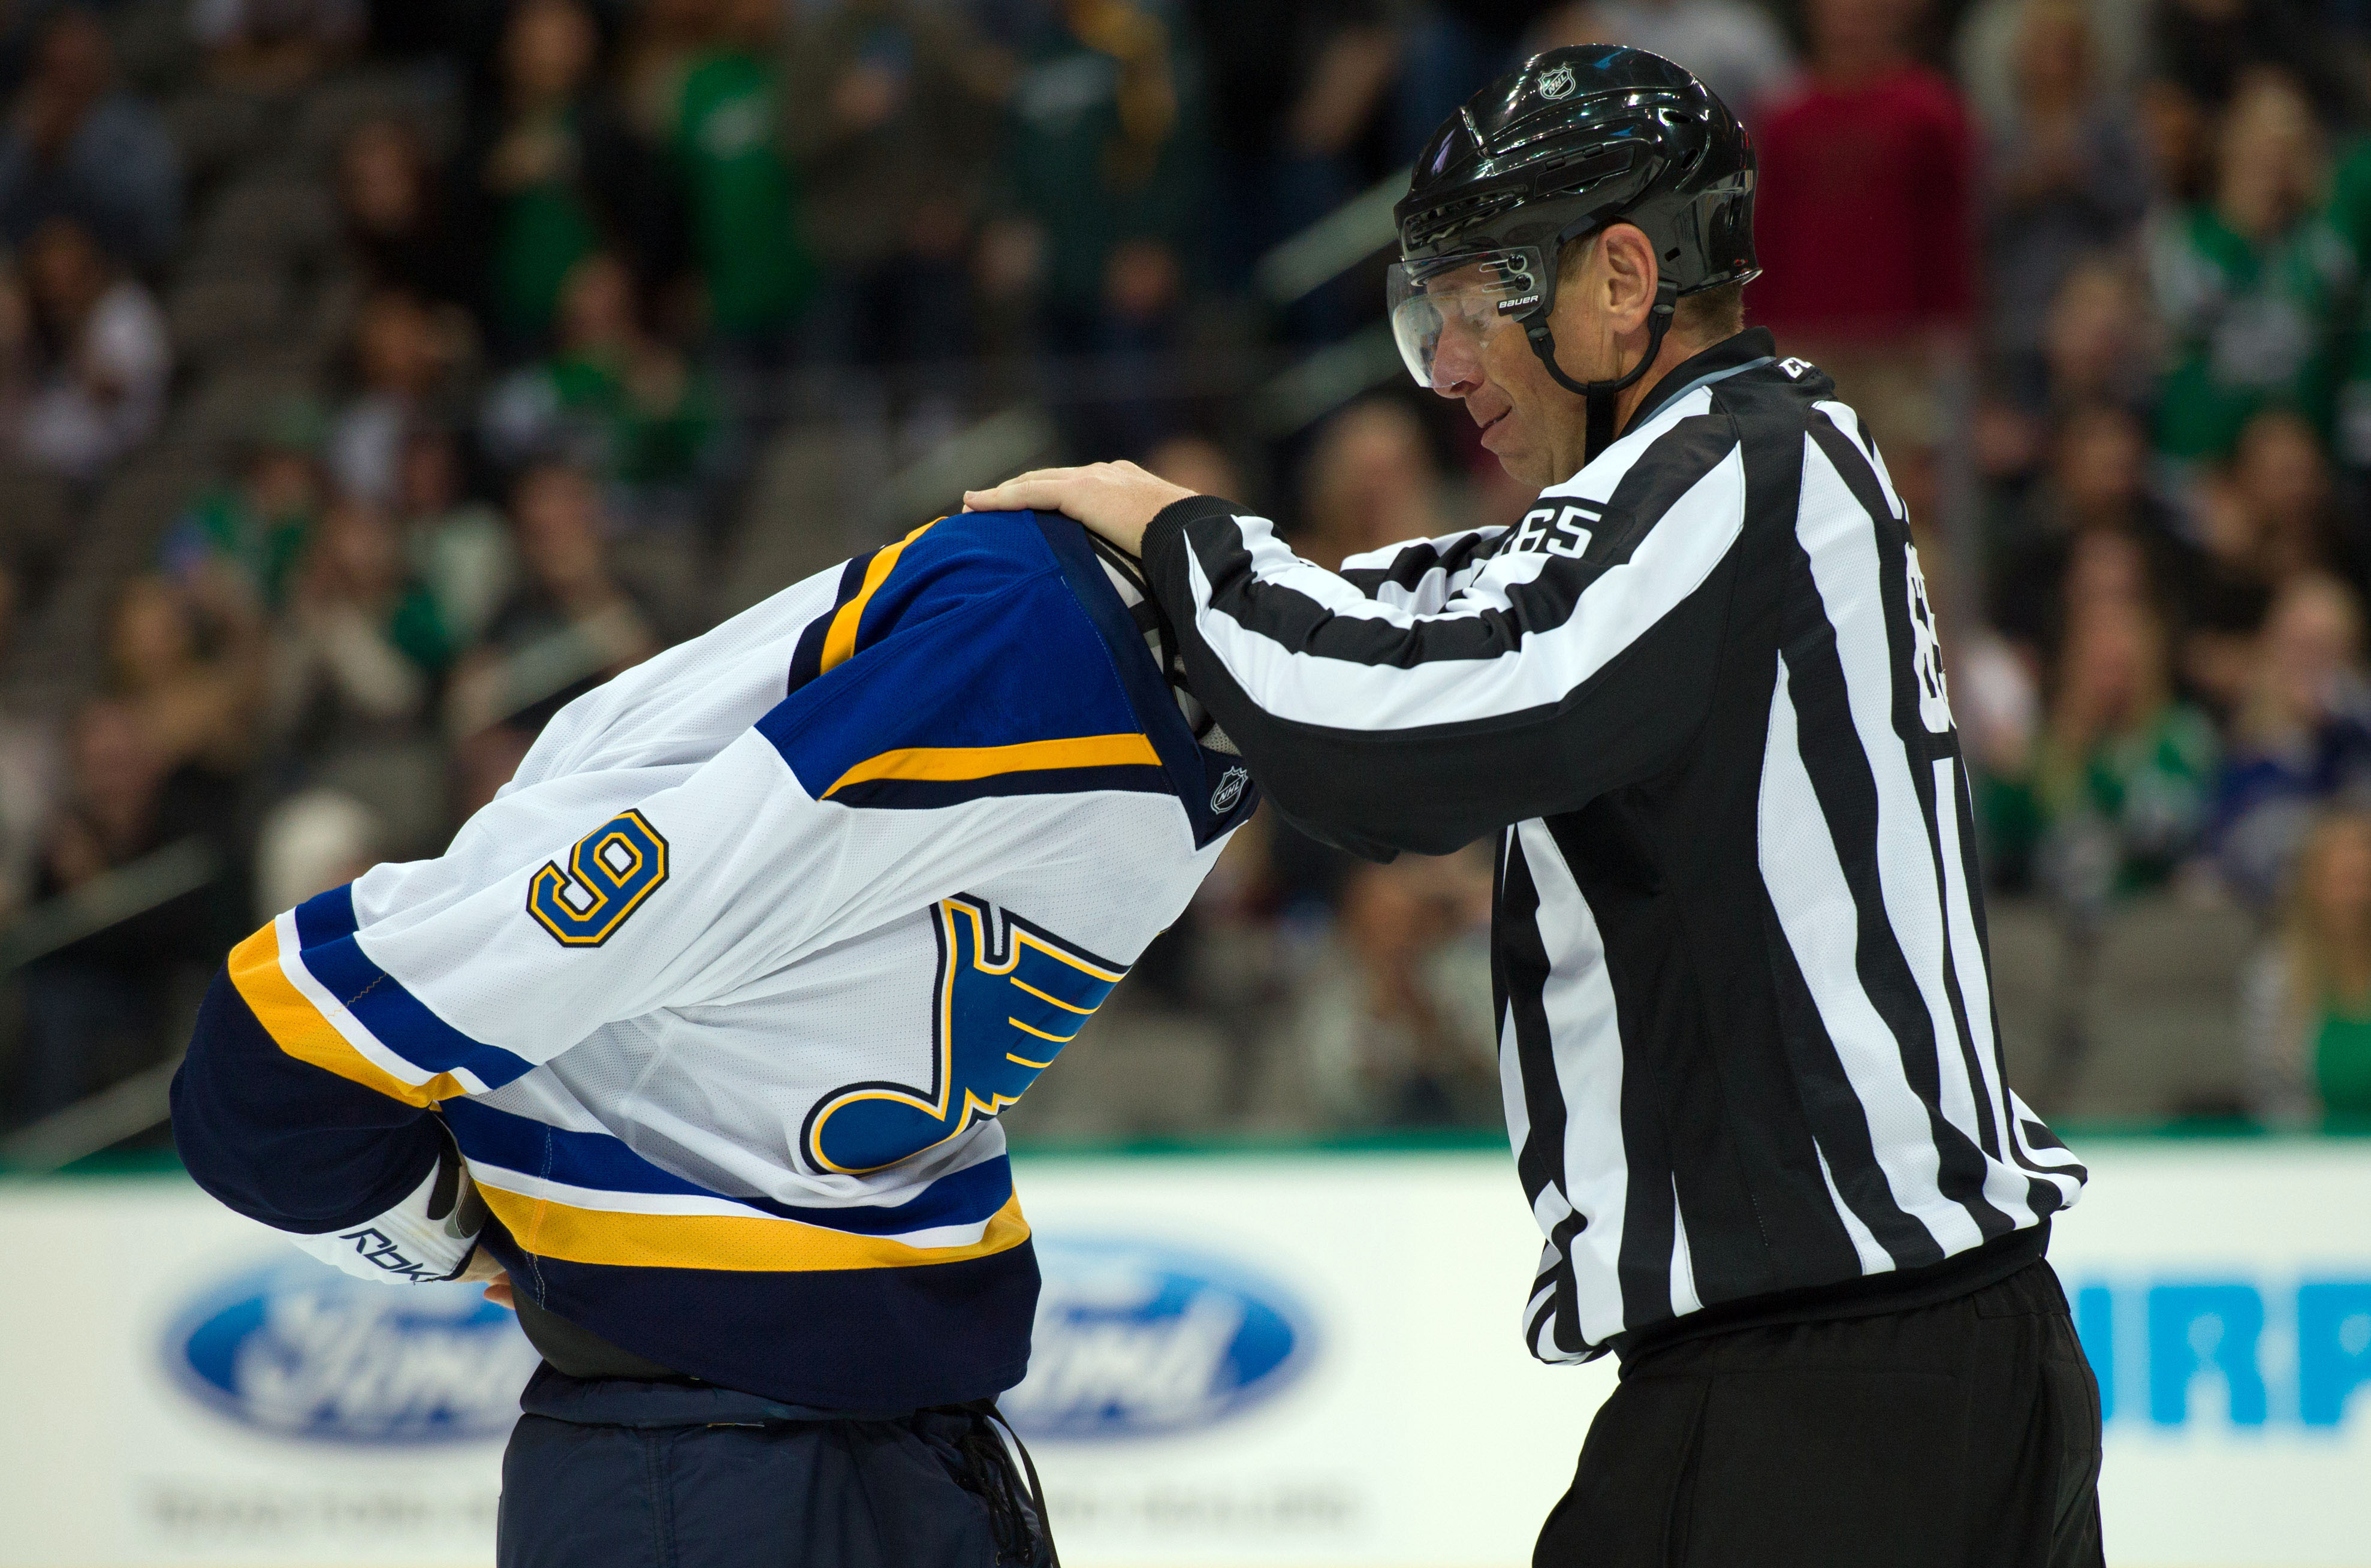 Even the linesmen don't want to see Steve Ott.